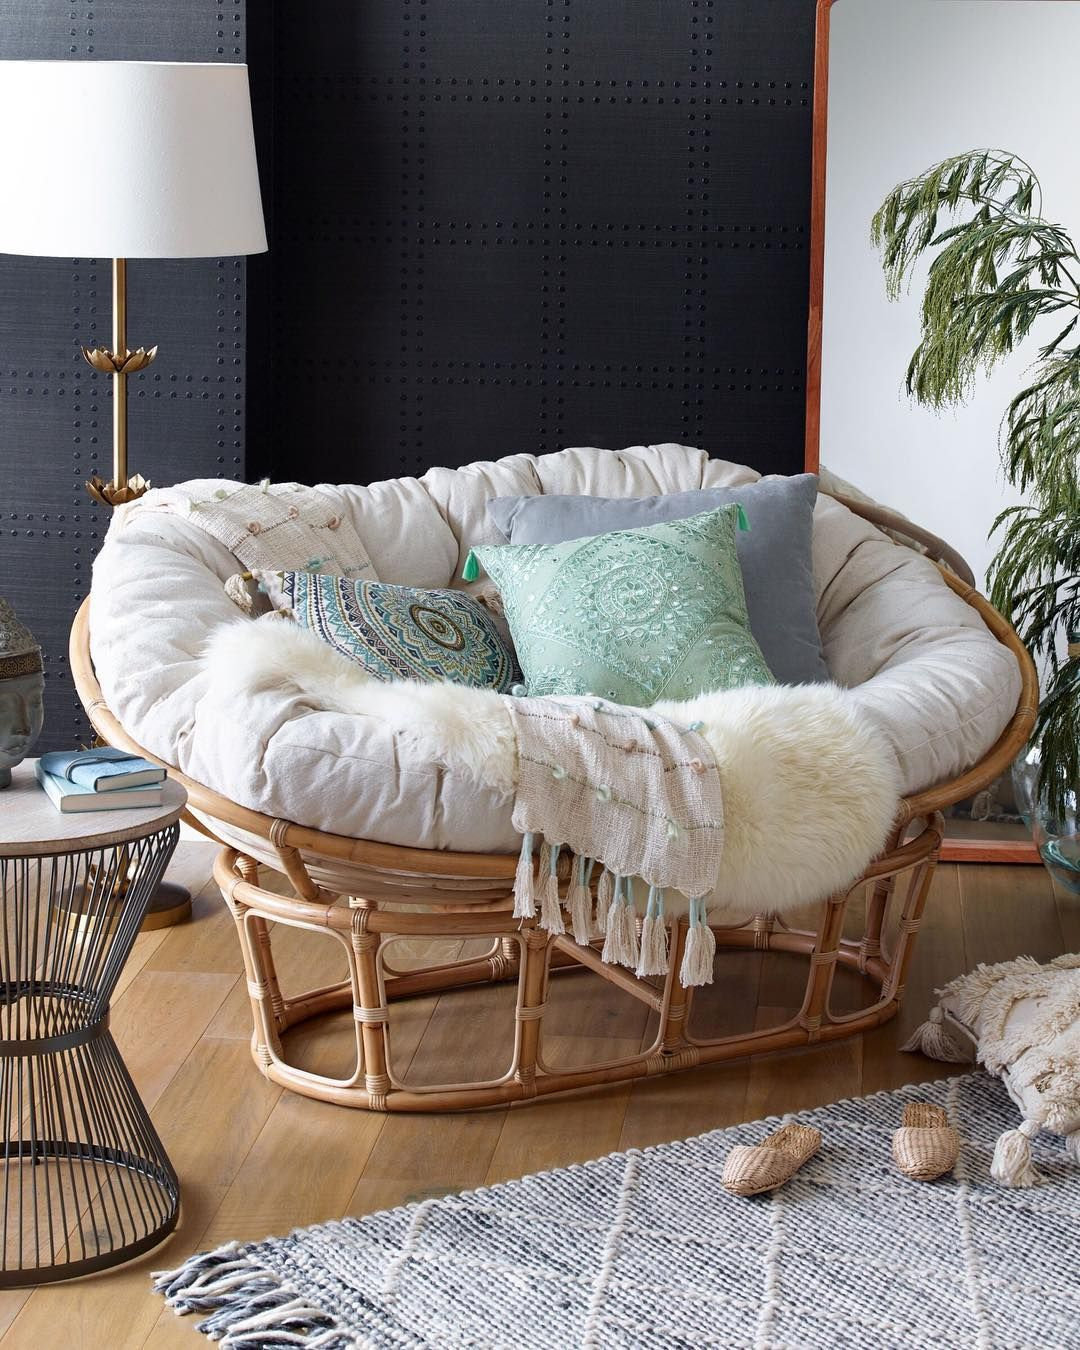 World Market On Instagram Double Up On Relaxation Our New Double Papasan Chair Offers Ample Ro Papasan Chair Living Room Papasan Chair Papasan Chair Bedroom